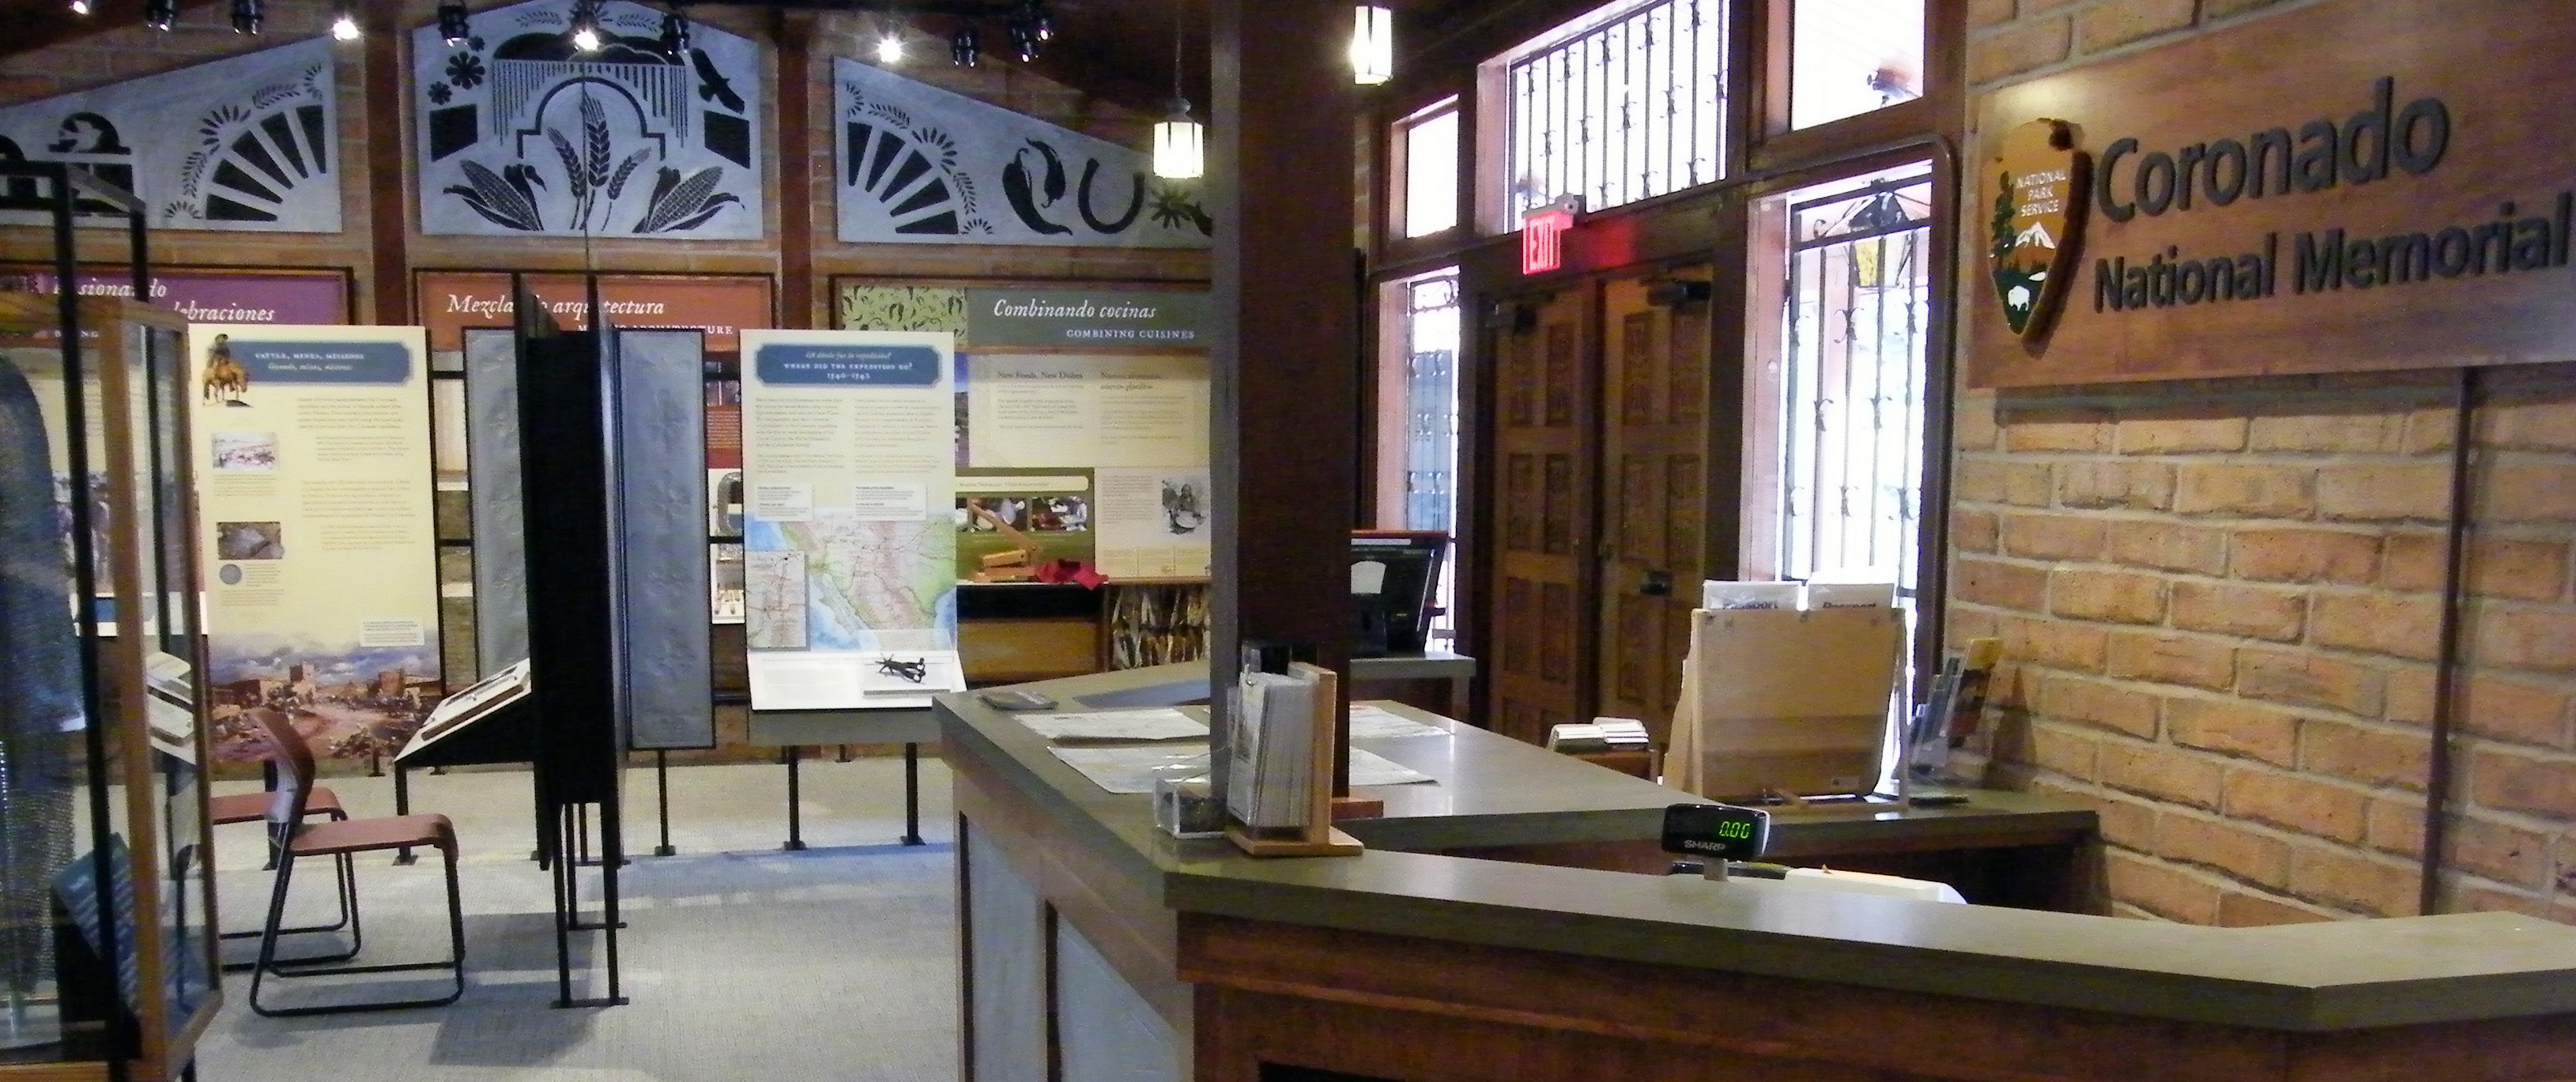 New 2016 Visitor Center Exhibits